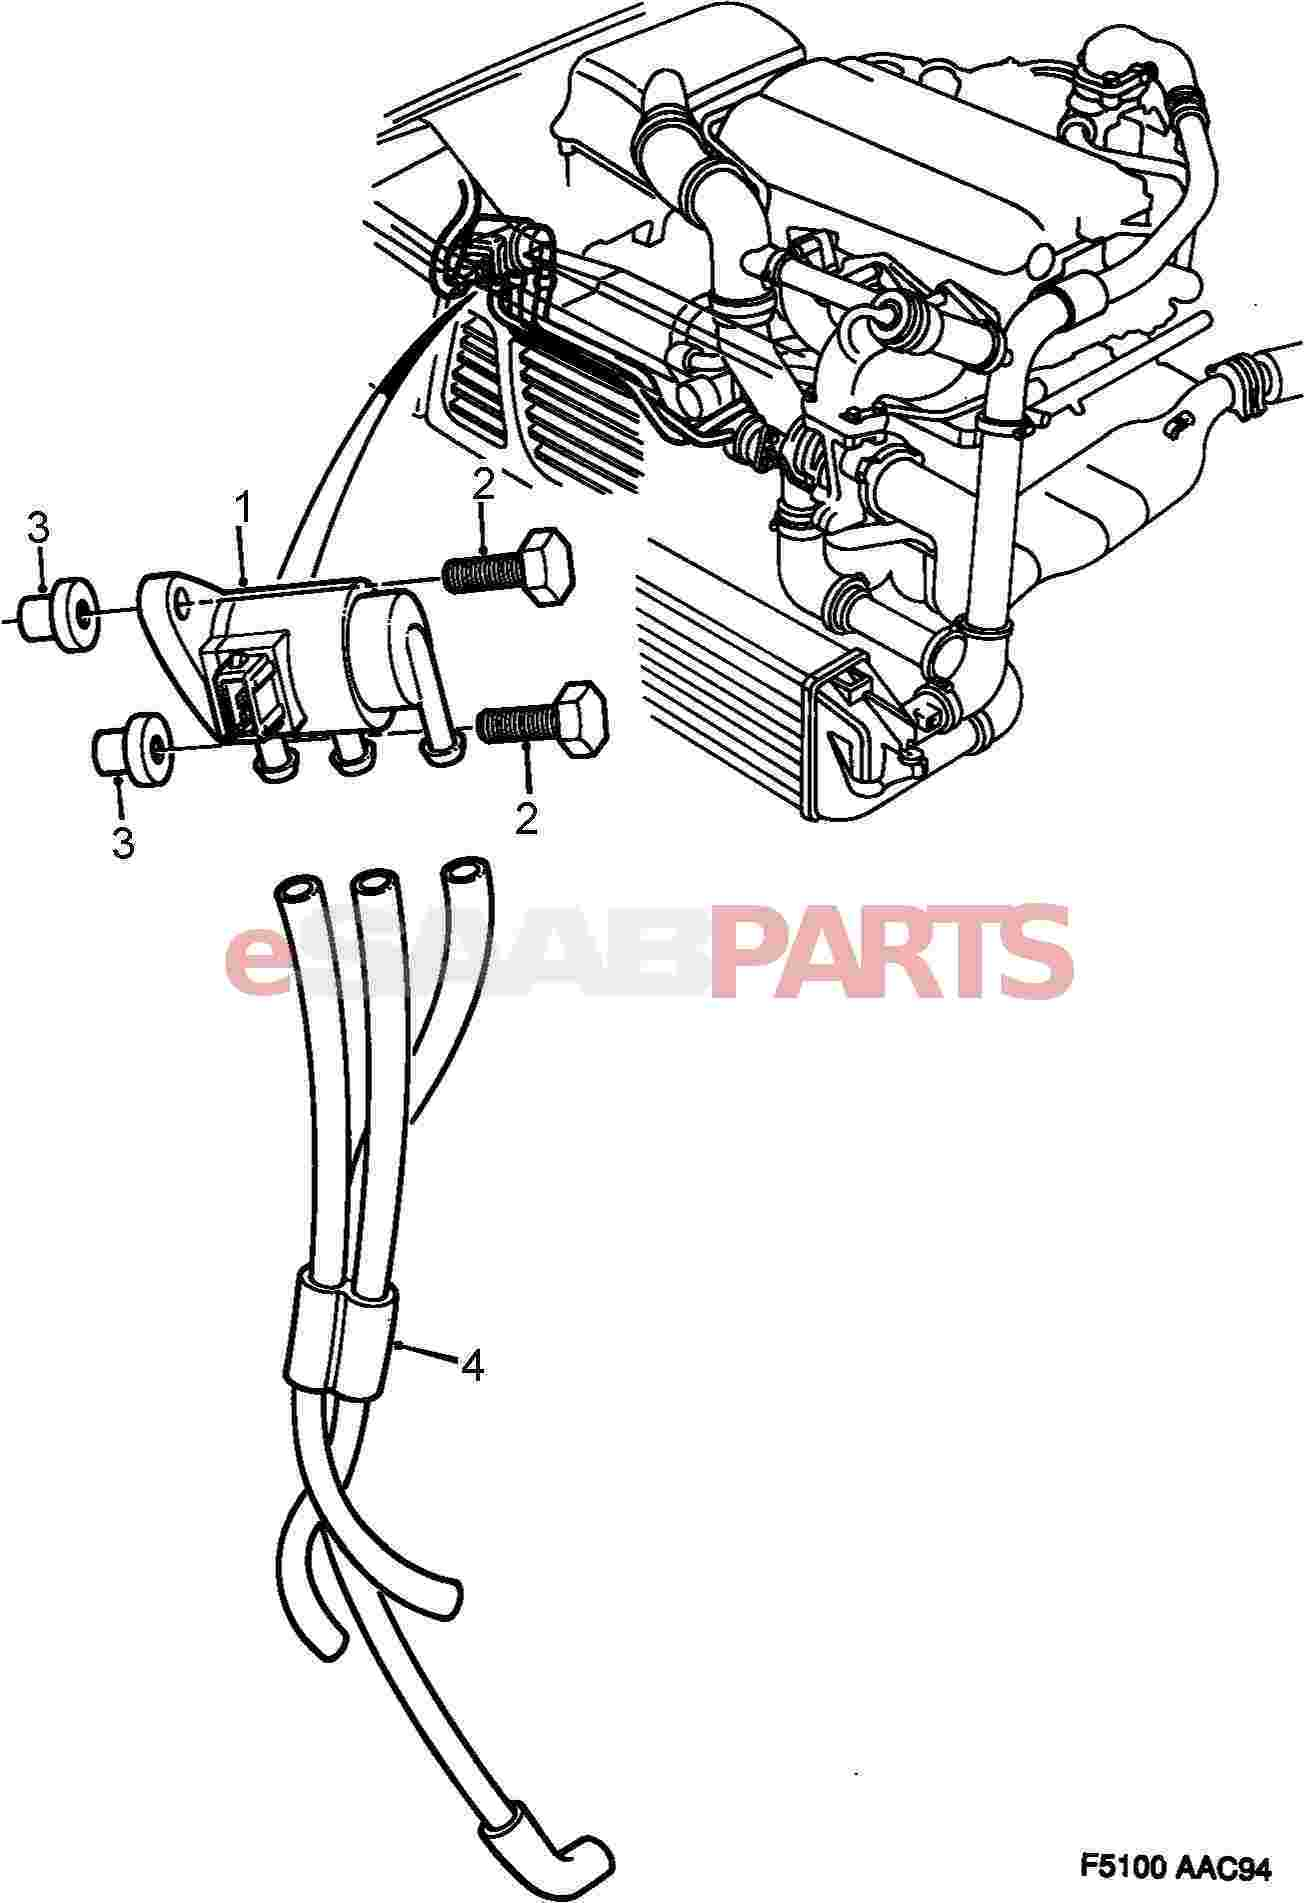 Saab 9 3 Parts Diagram, Saab, Free Engine Image For User